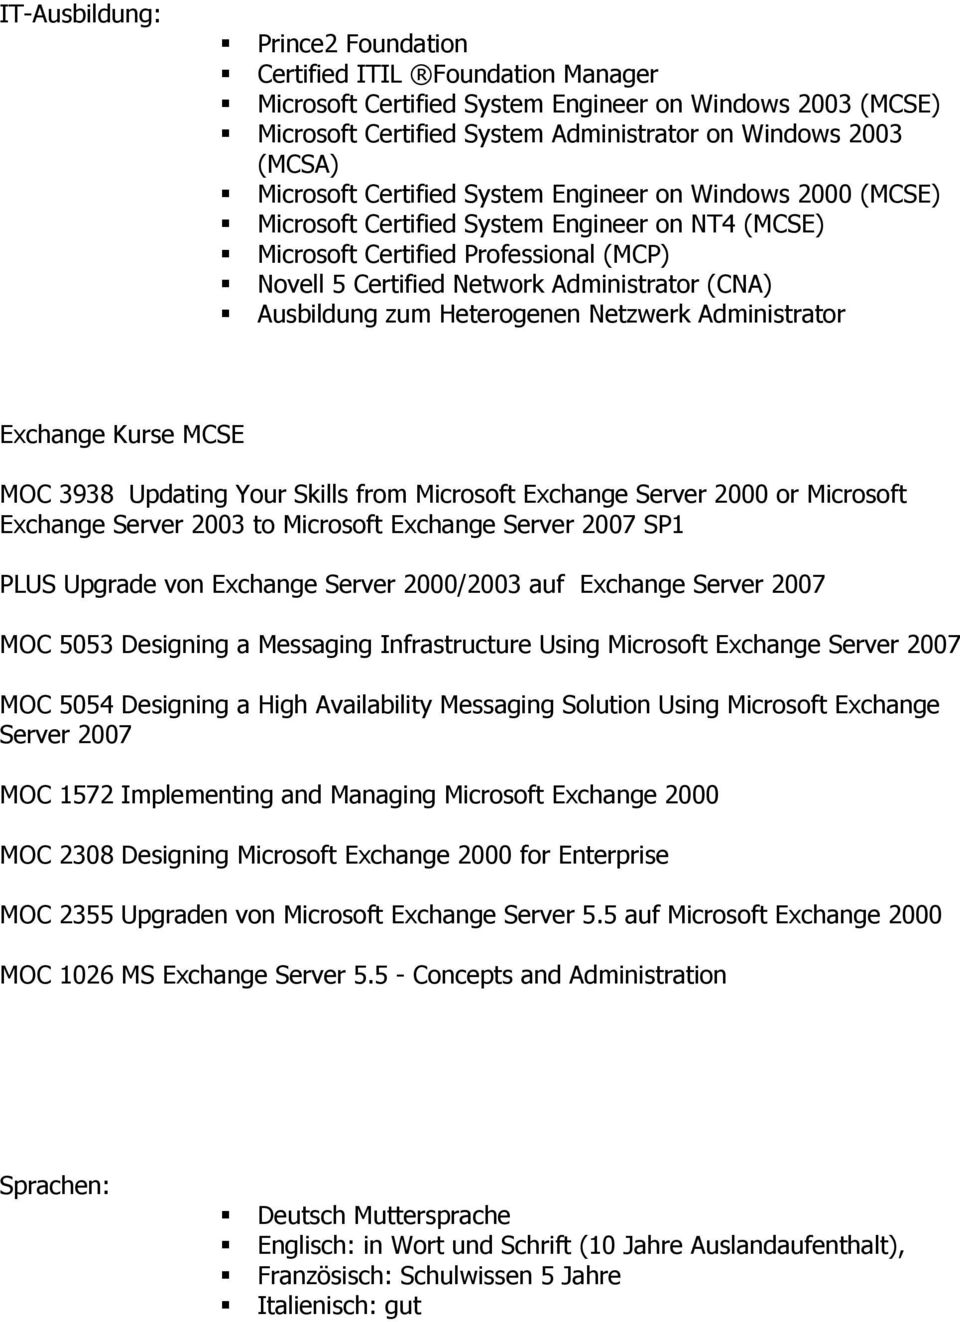 Ausbildung zum Heterogenen Netzwerk Administrator Exchange Kurse MCSE MOC 3938 Updating Your Skills from Microsoft Exchange Server 2000 or Microsoft Exchange Server 2003 to Microsoft Exchange Server